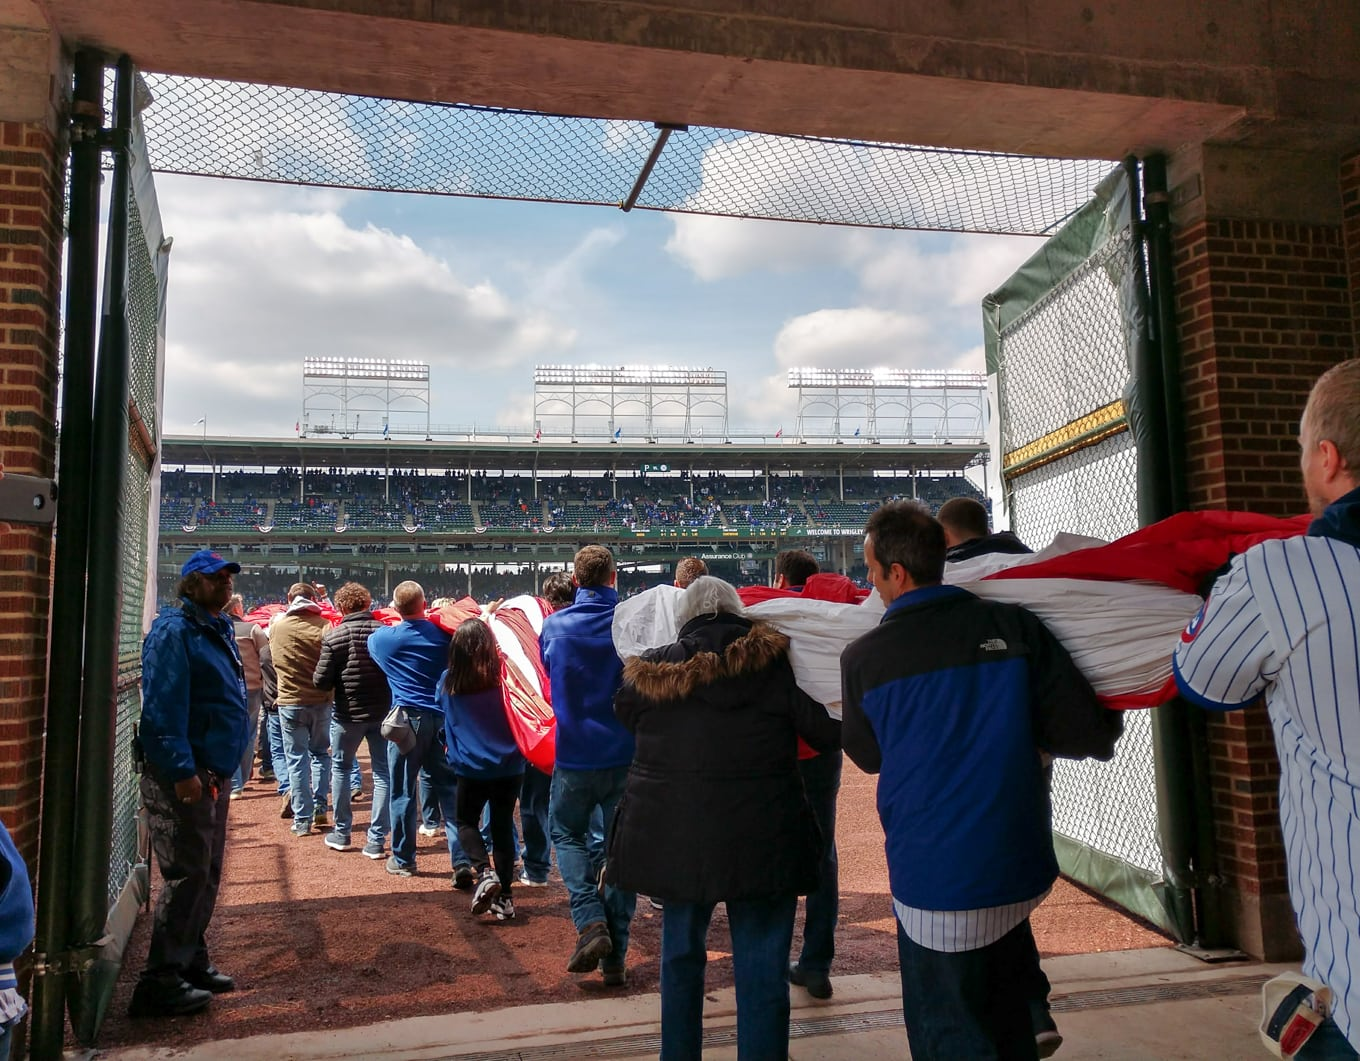 Carrying out the flag at the Cubs Stadium